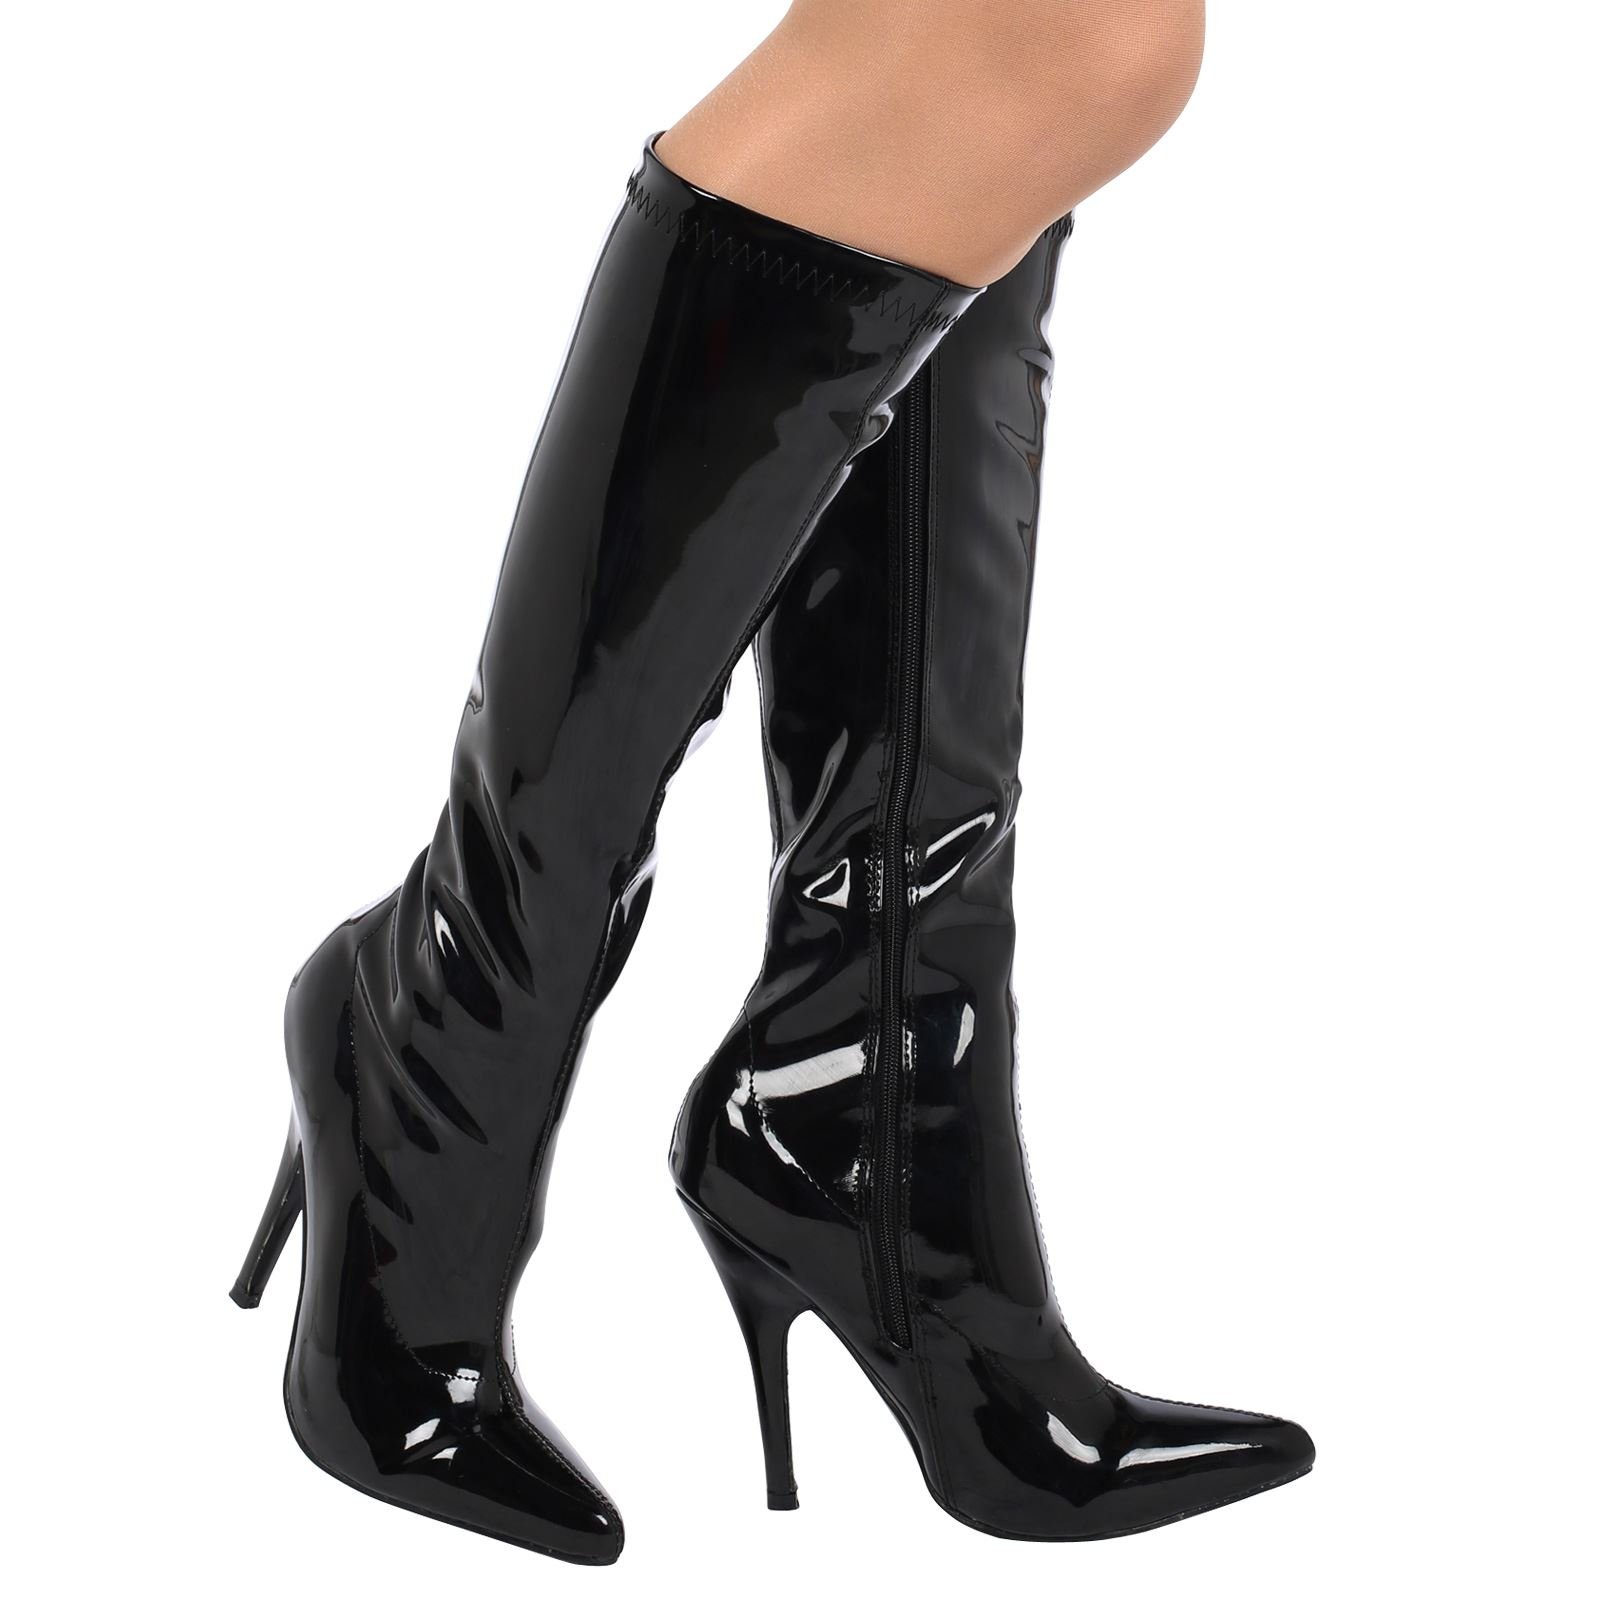 womens boots ladies under knee high heels stiletto pointed toe shoes size new ebay. Black Bedroom Furniture Sets. Home Design Ideas